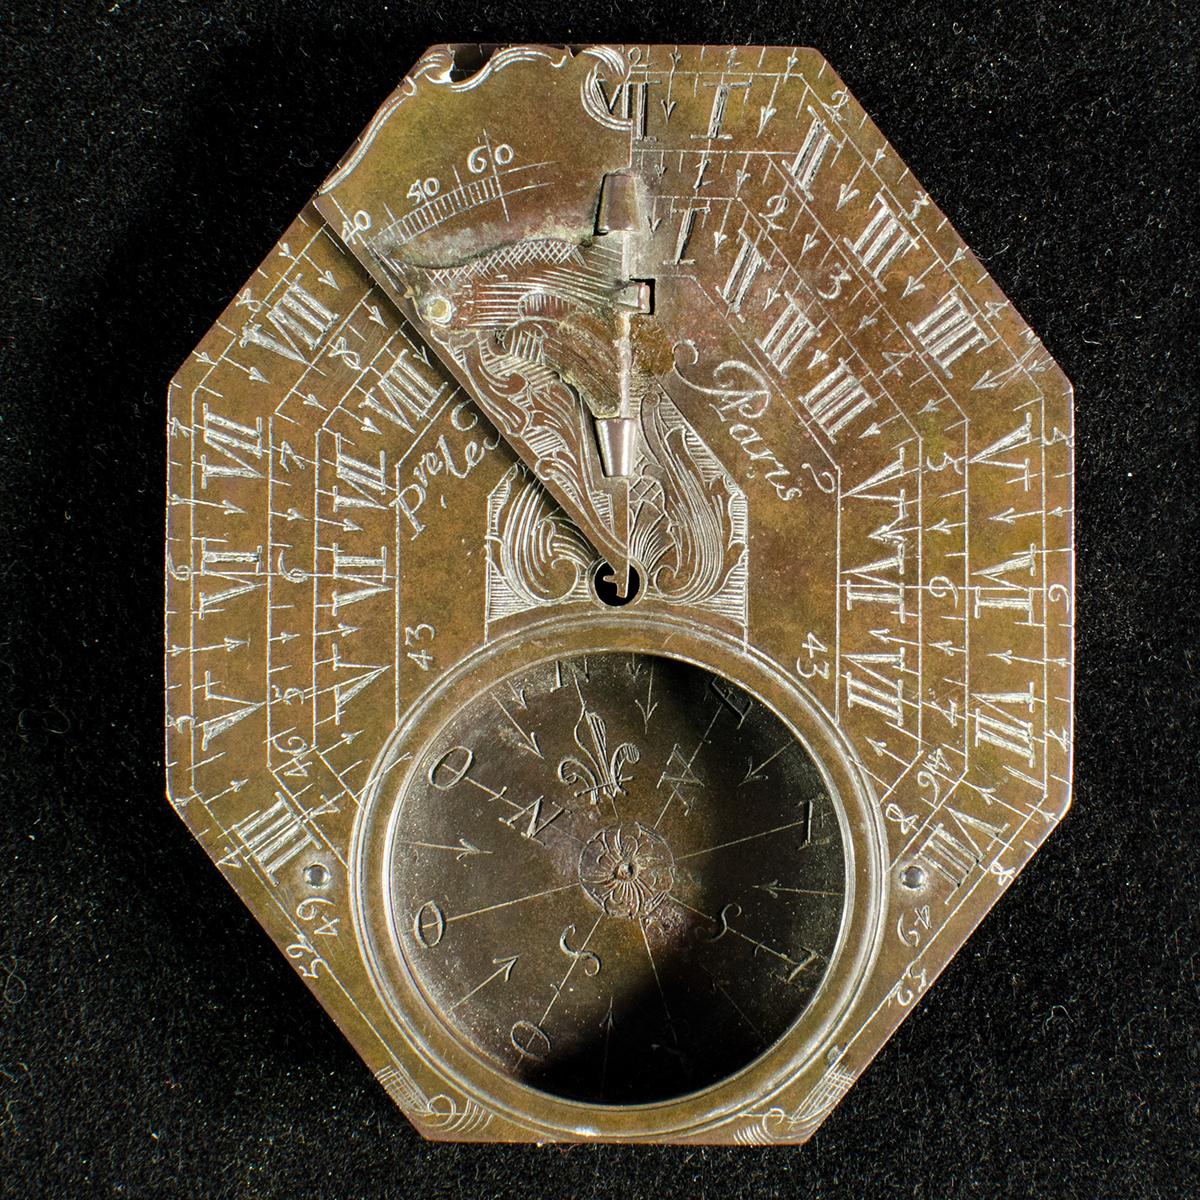 le maire sundial compass